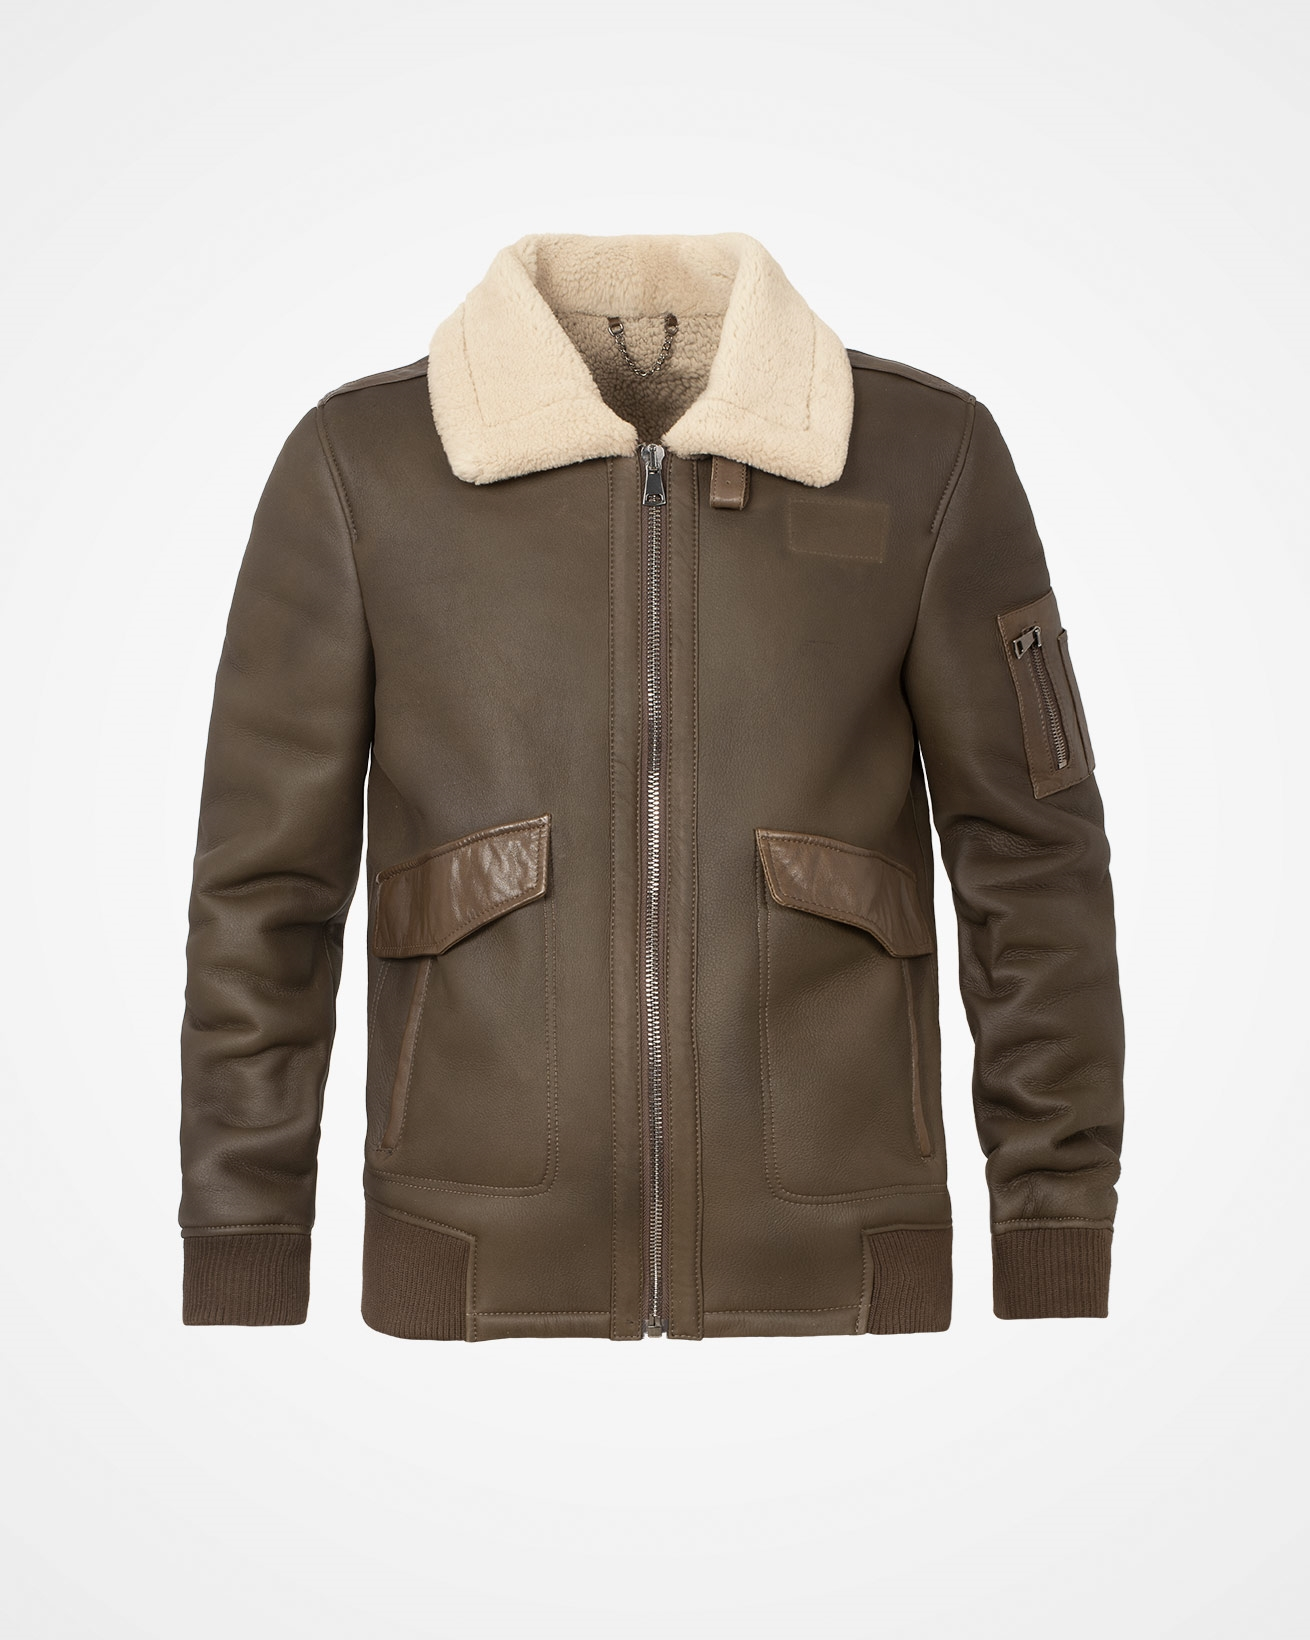 Men's Sheepskin Maverick Jacket - Size Medium - Tanners Brown - 2012